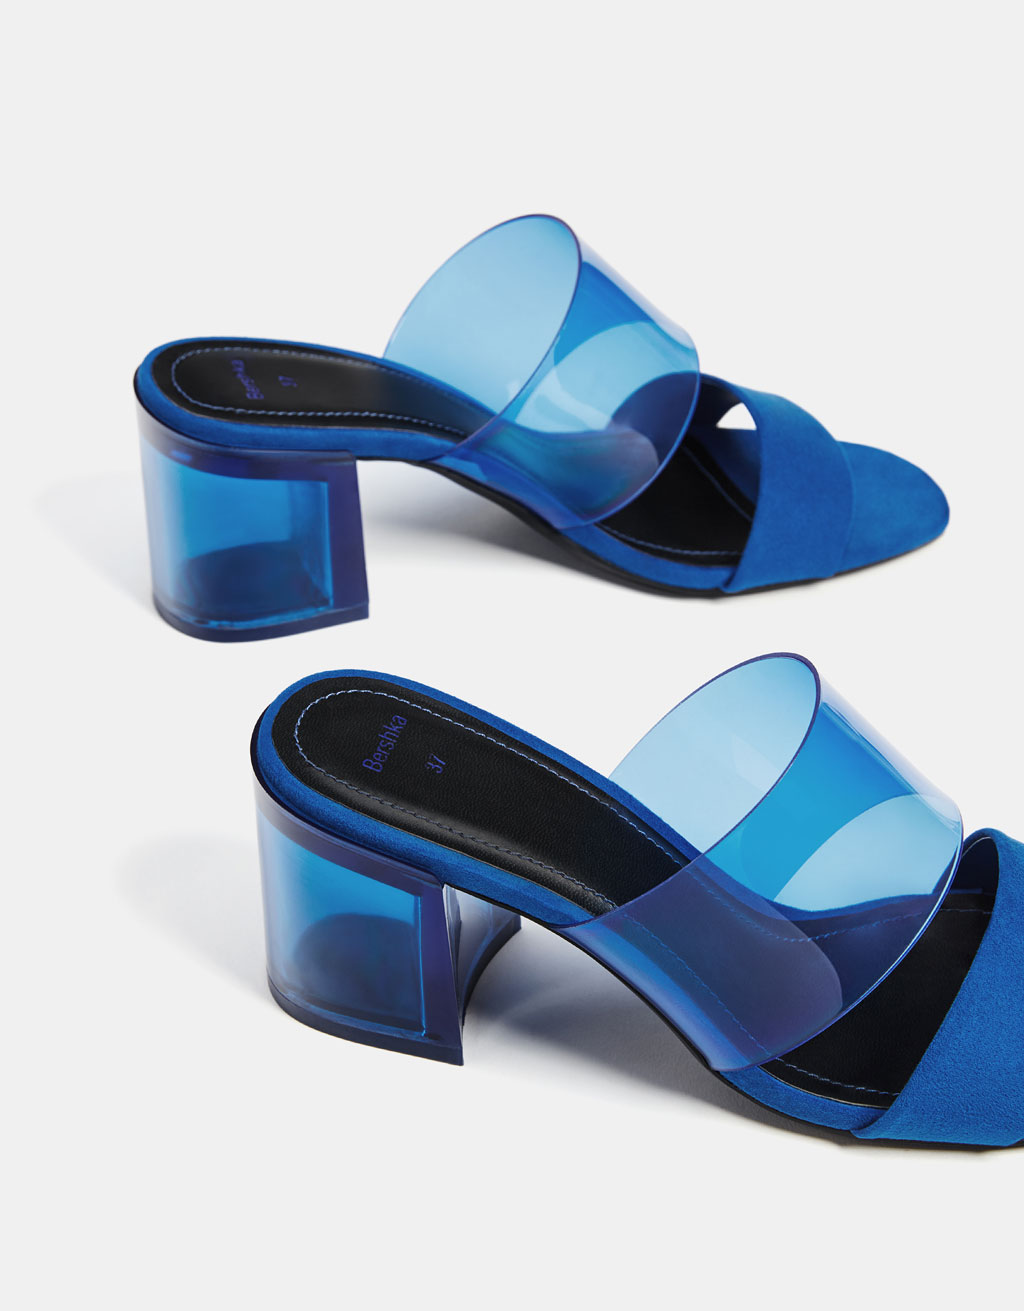 Mid-heel sandals with contrasting vinyl strap